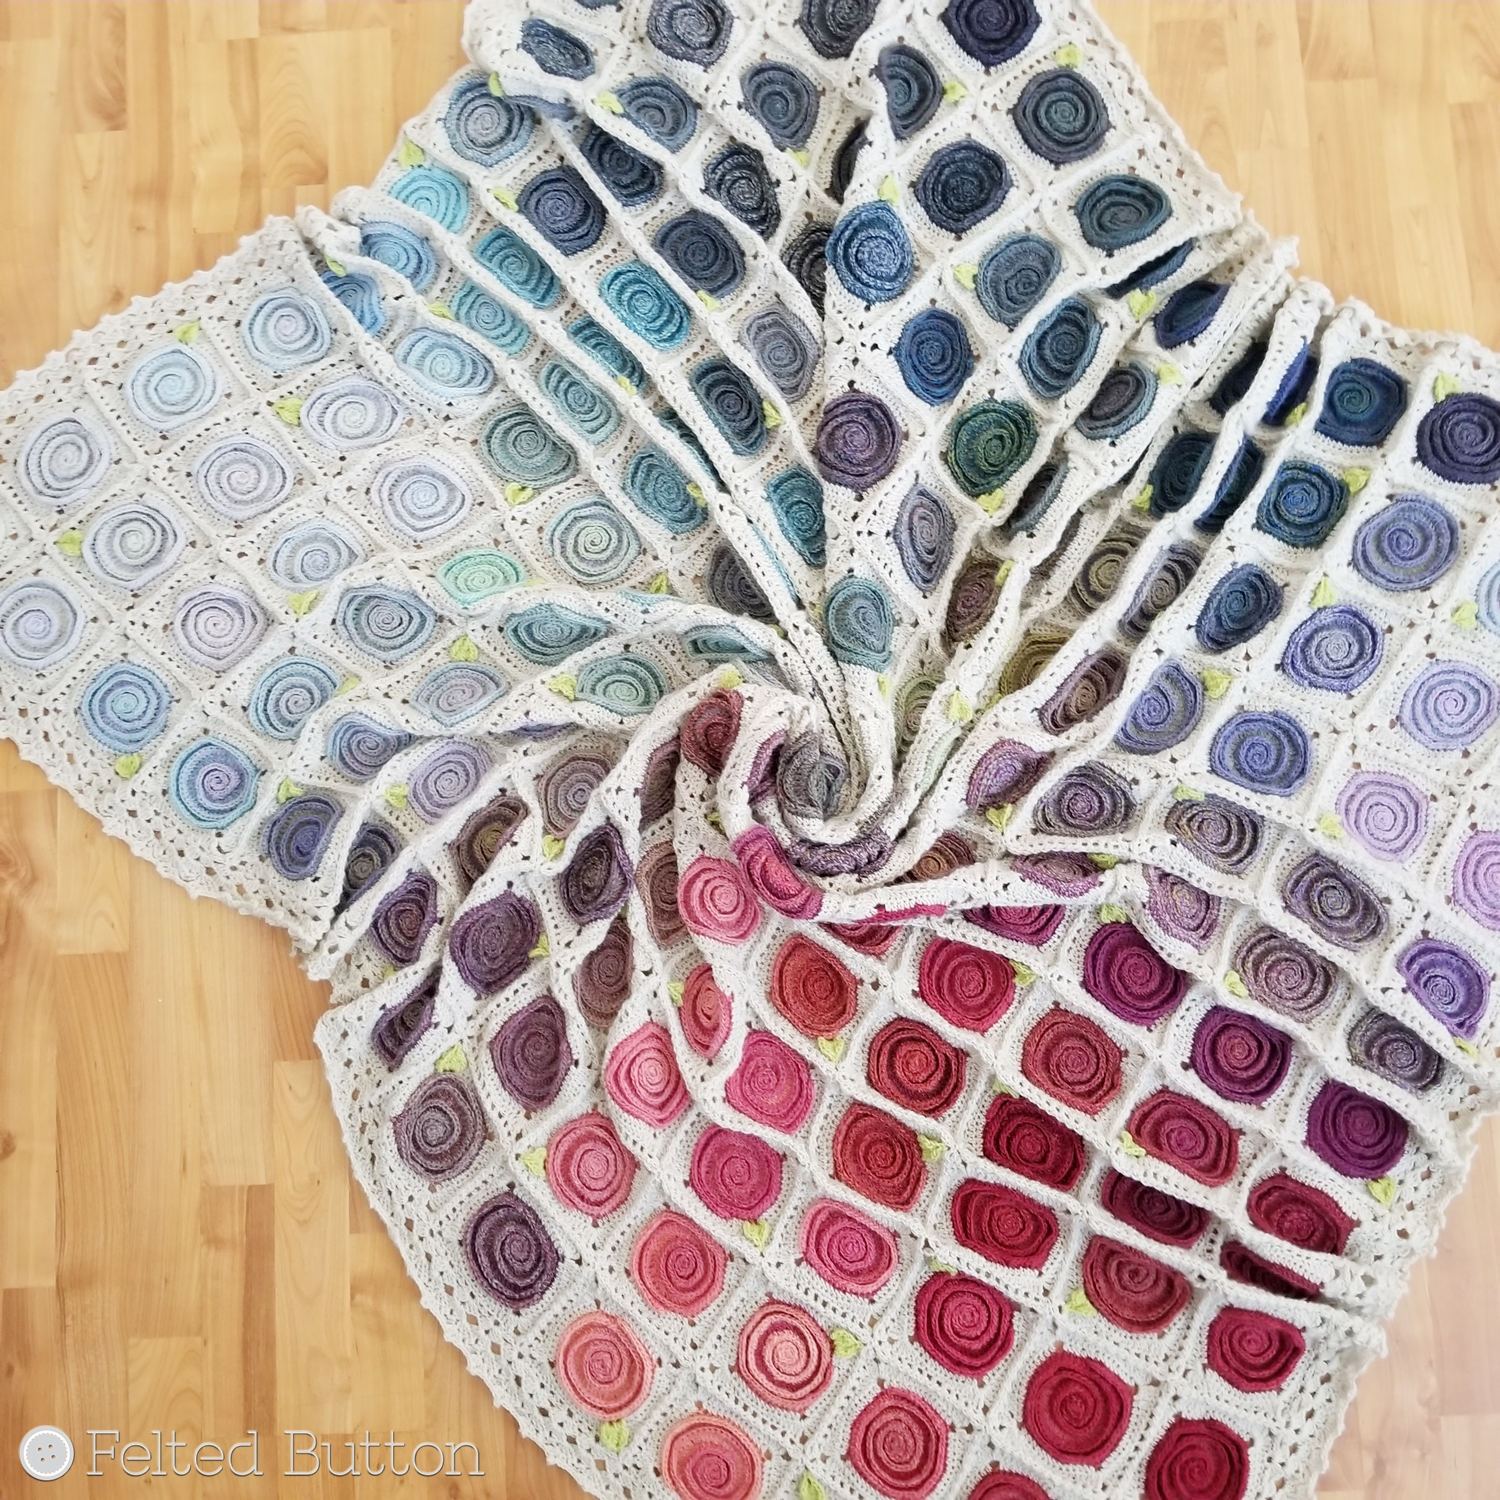 Felted Button Colorful Crochet Patterns Sweven Throw Crochet